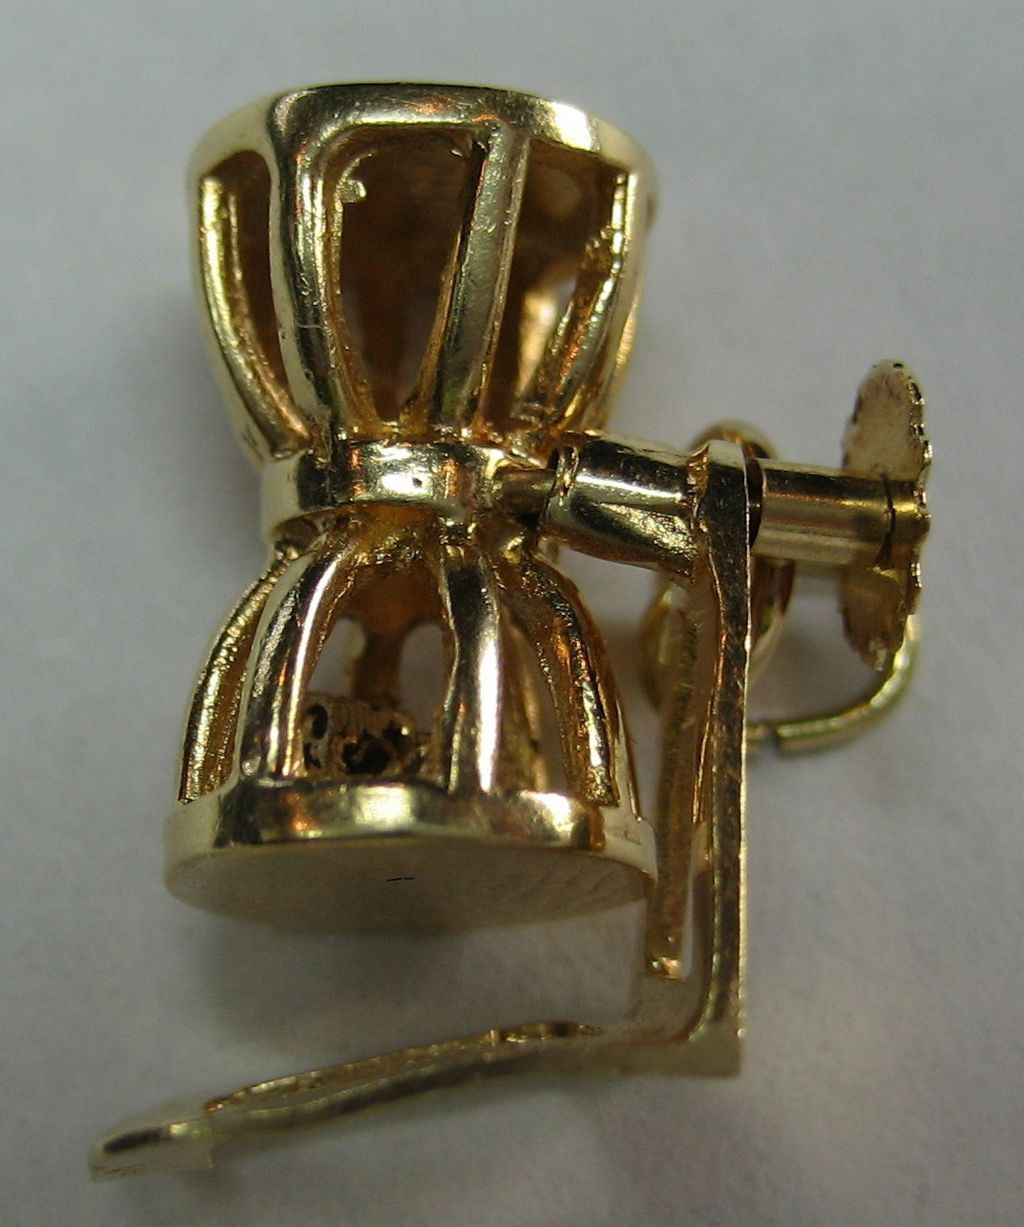 Moveable Chuck-a-Luck Dice Game Vintage 14k Gold Charm